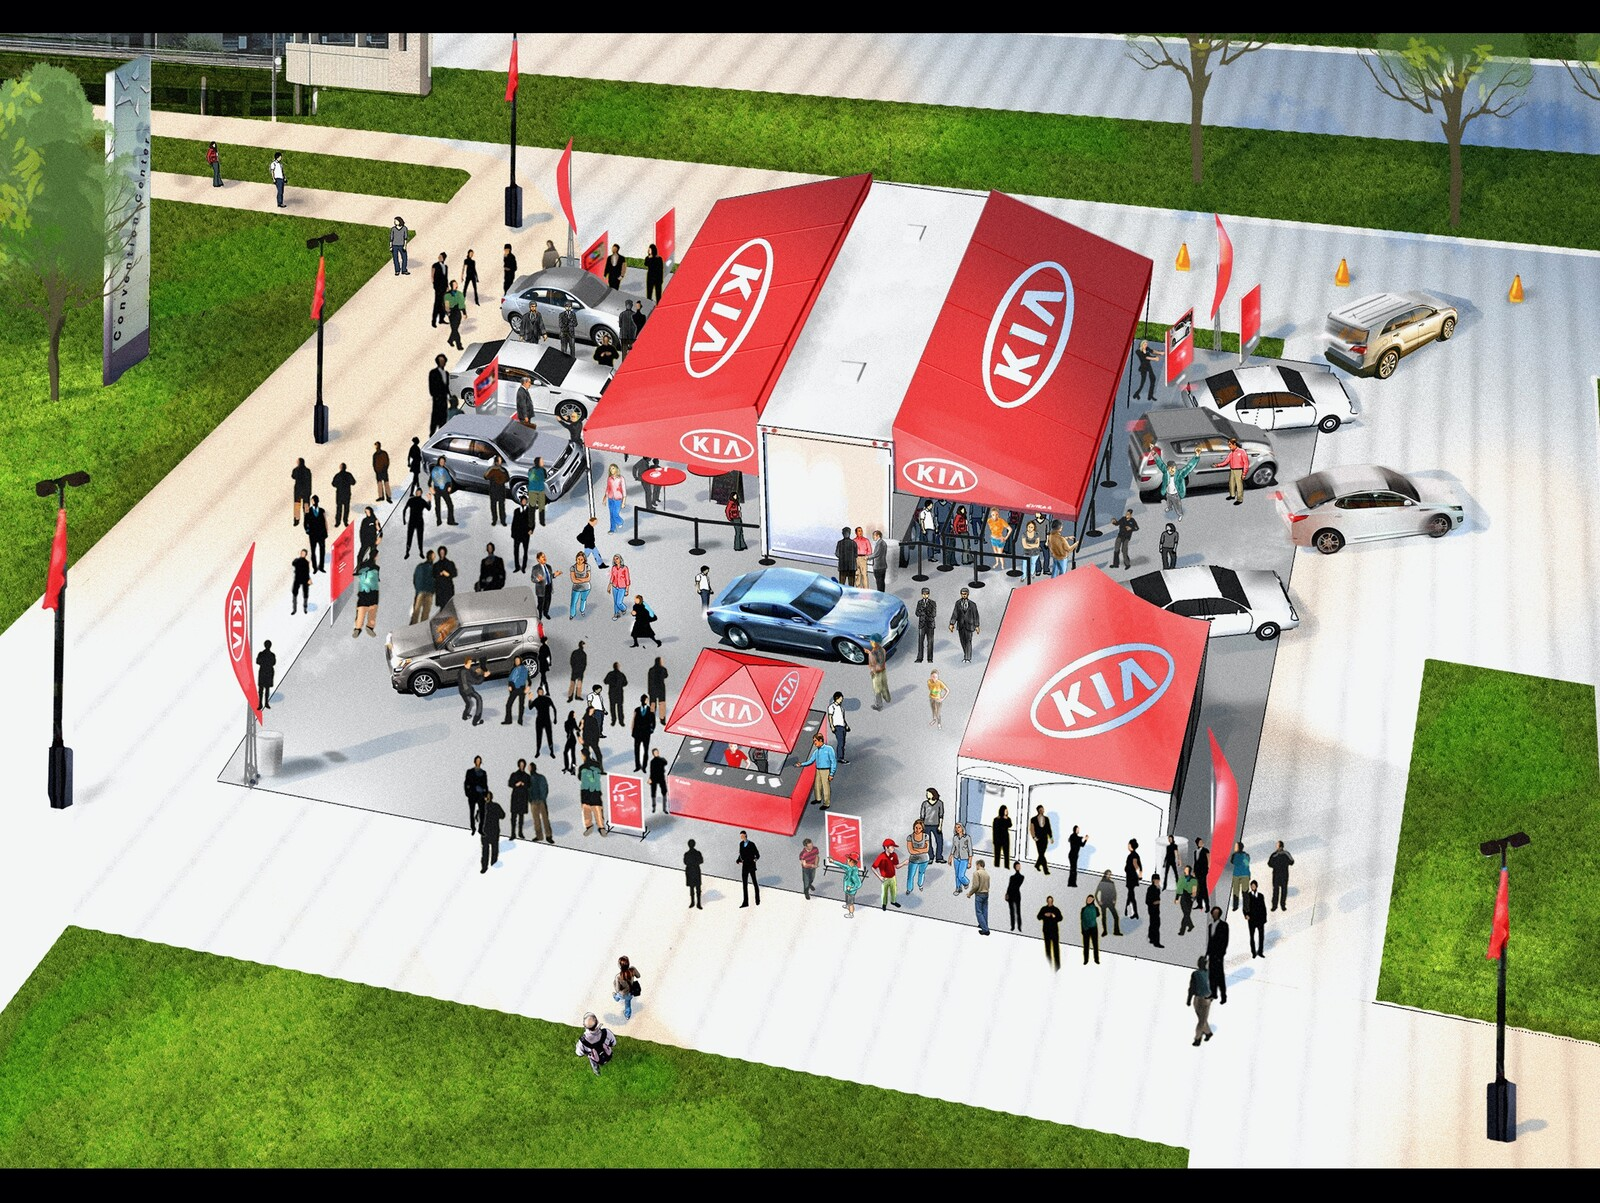 KIA Event meeting sketch